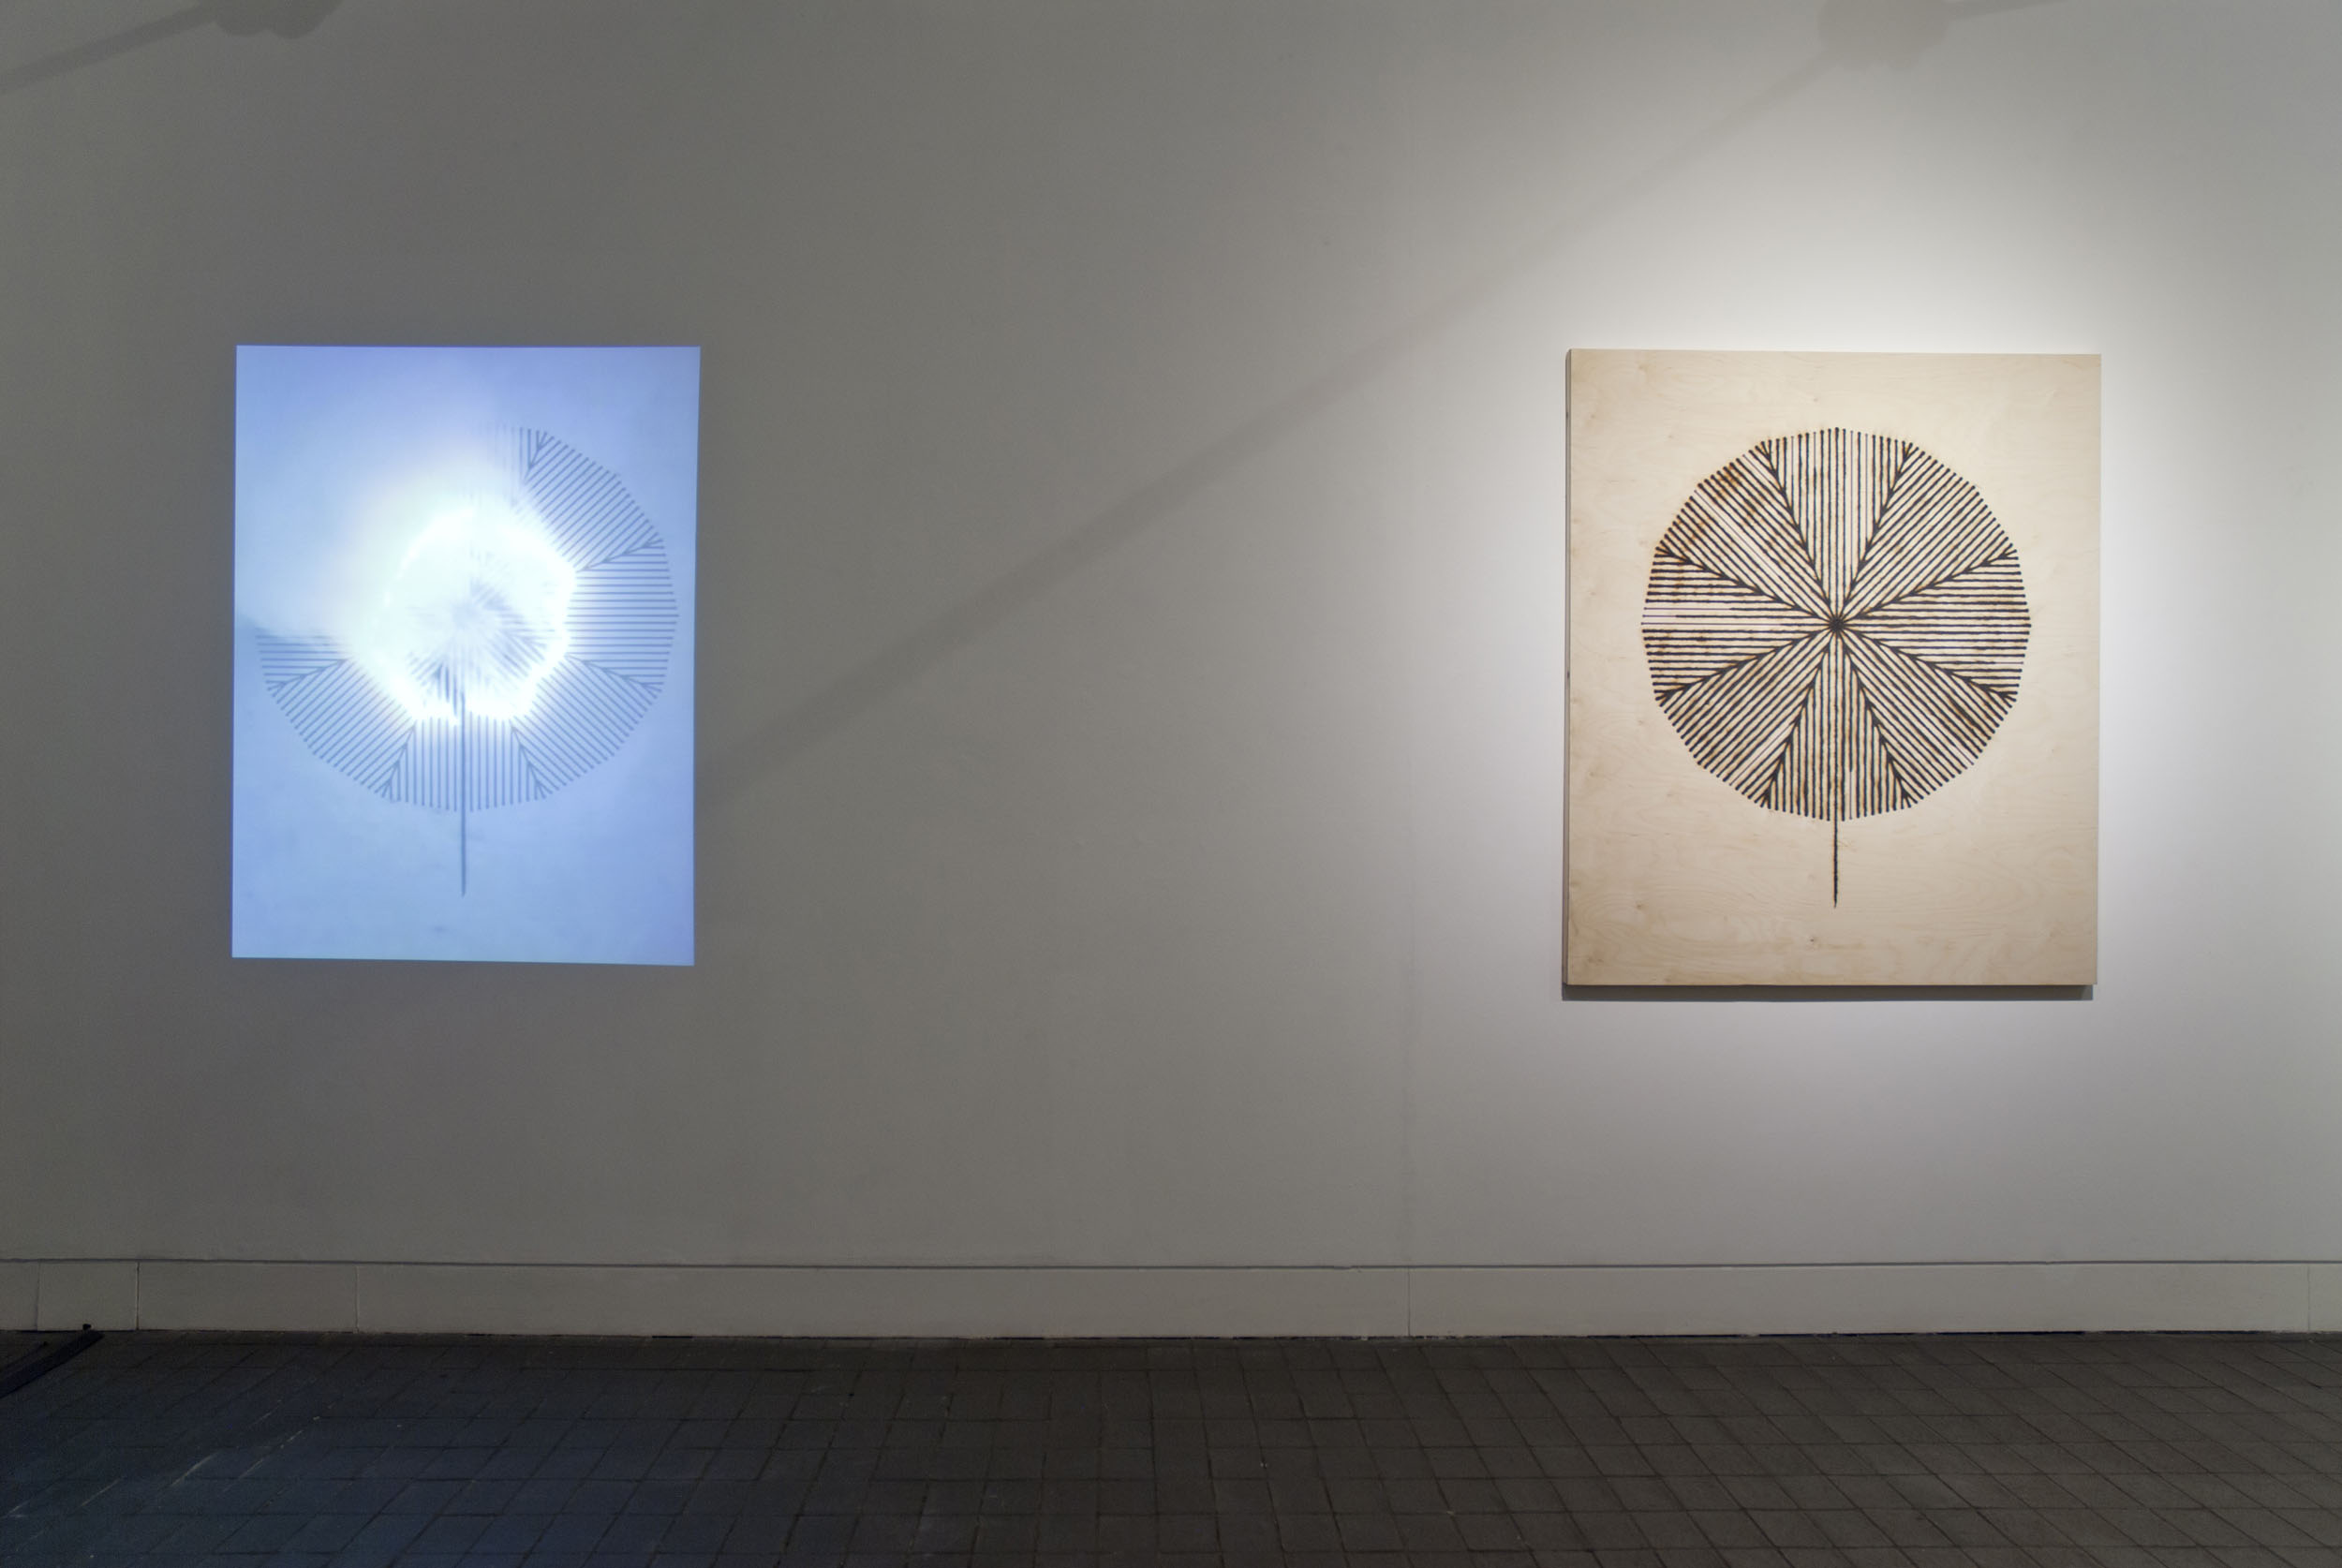 A photograph from Fire Drawings exhibition at the Jerwood Gallery of hung work and film